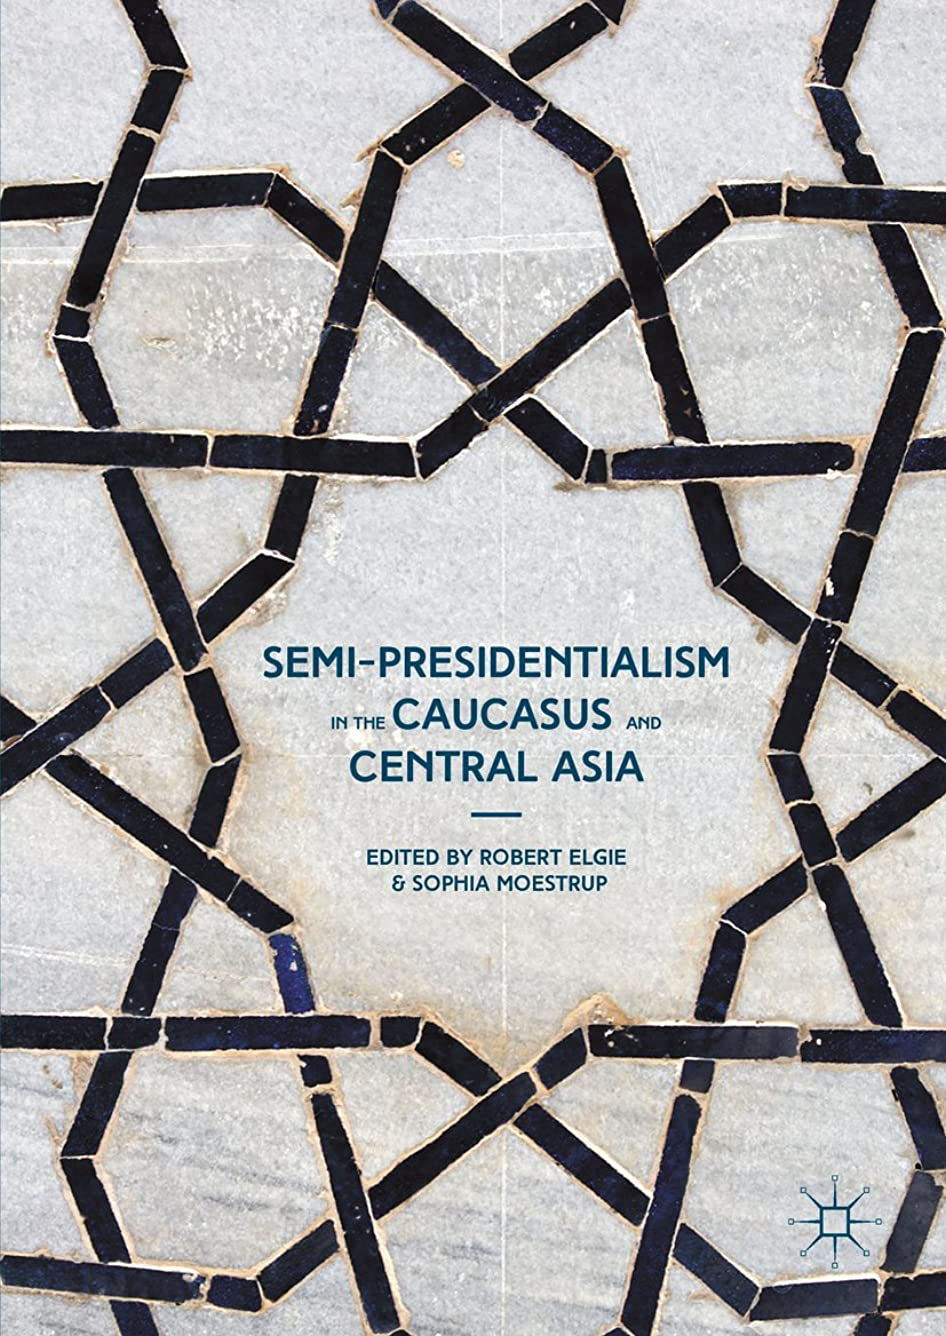 クライストチャーチ暗い悪意Semi-Presidentialism in the Caucasus and Central Asia (Palgrave Studies in Political Leadership) (English Edition)